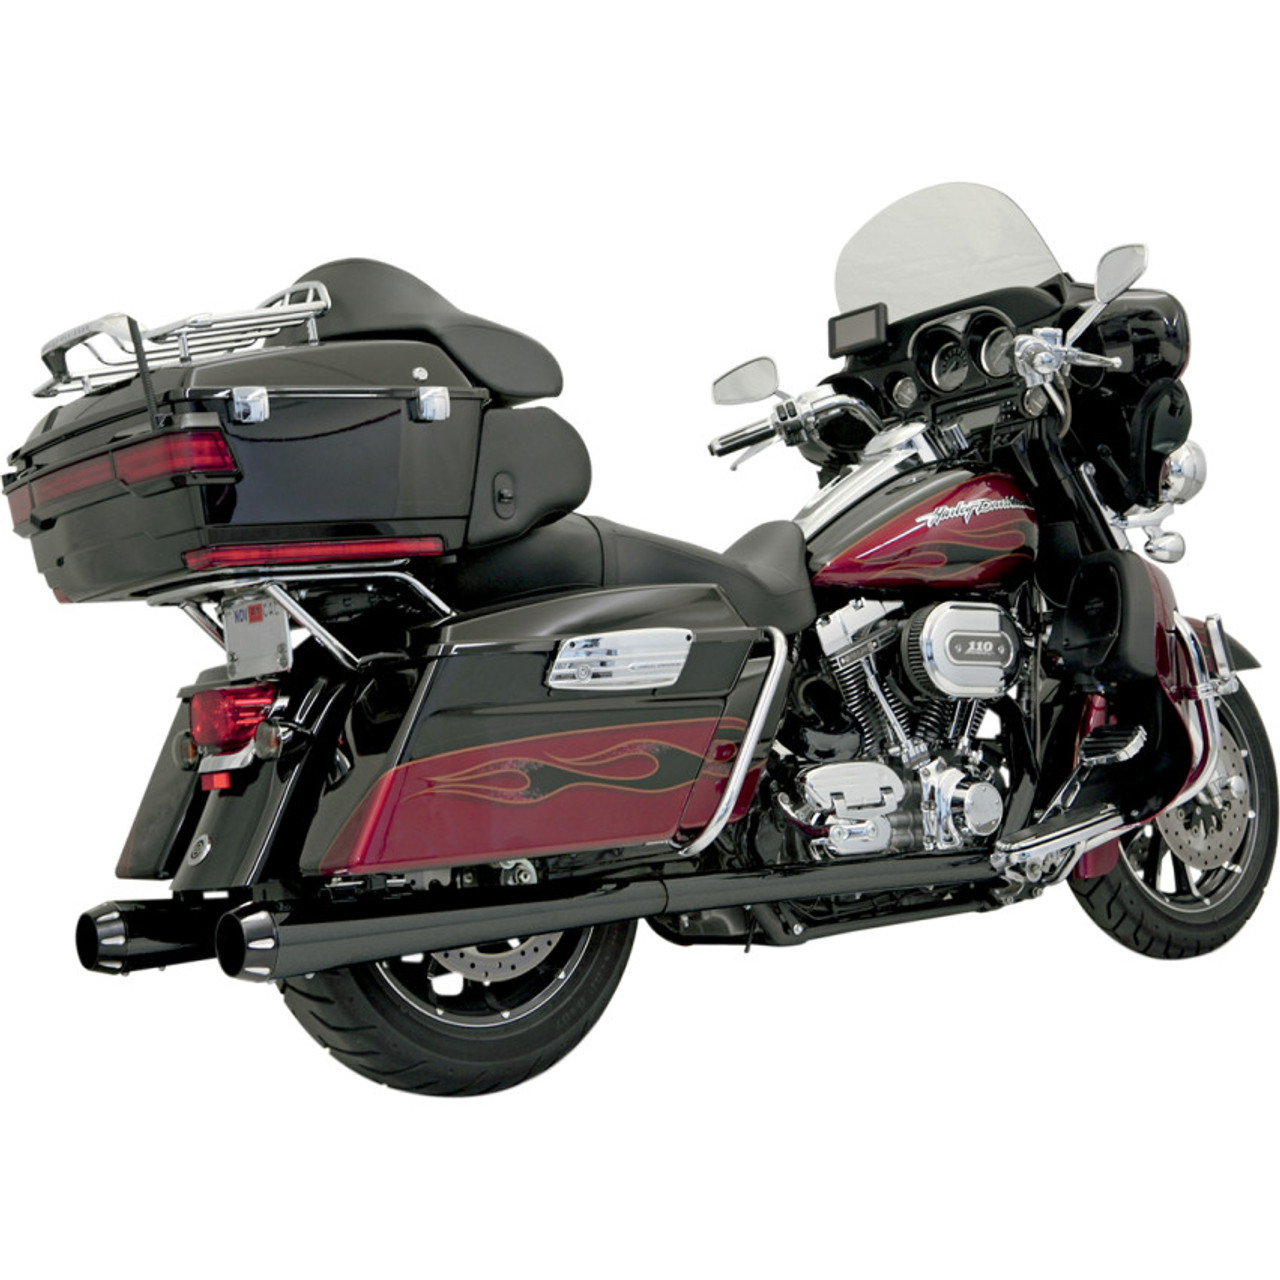 bassani p bagger stepped true duals exhaust system with power curve and megaphone mufflers for 1995 2008 harley touring